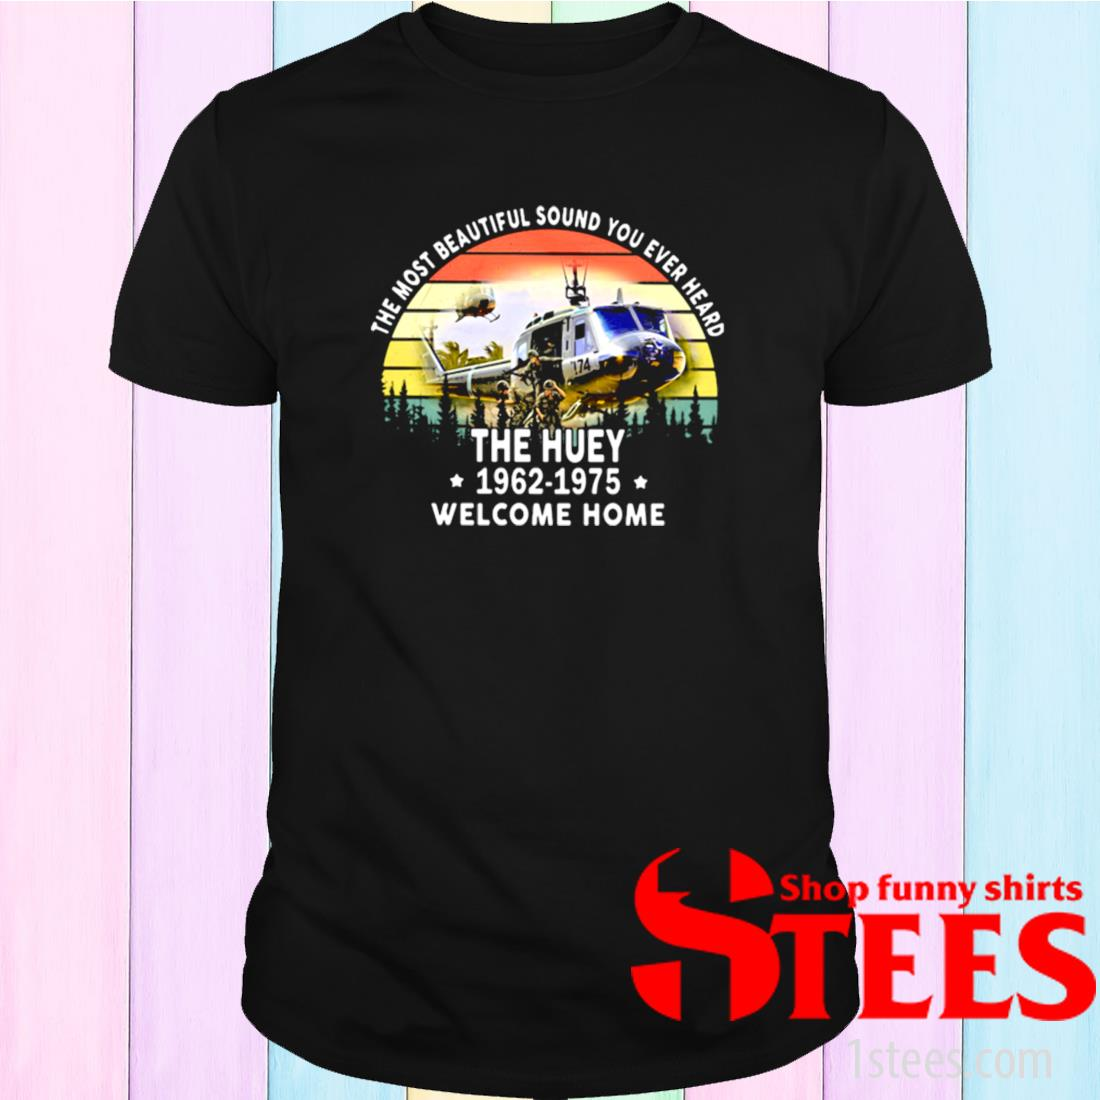 The Most Beautiful Sound You Ever Heard The Huey 1962-1975 Welcome Home Helicapter Vintage Shirt